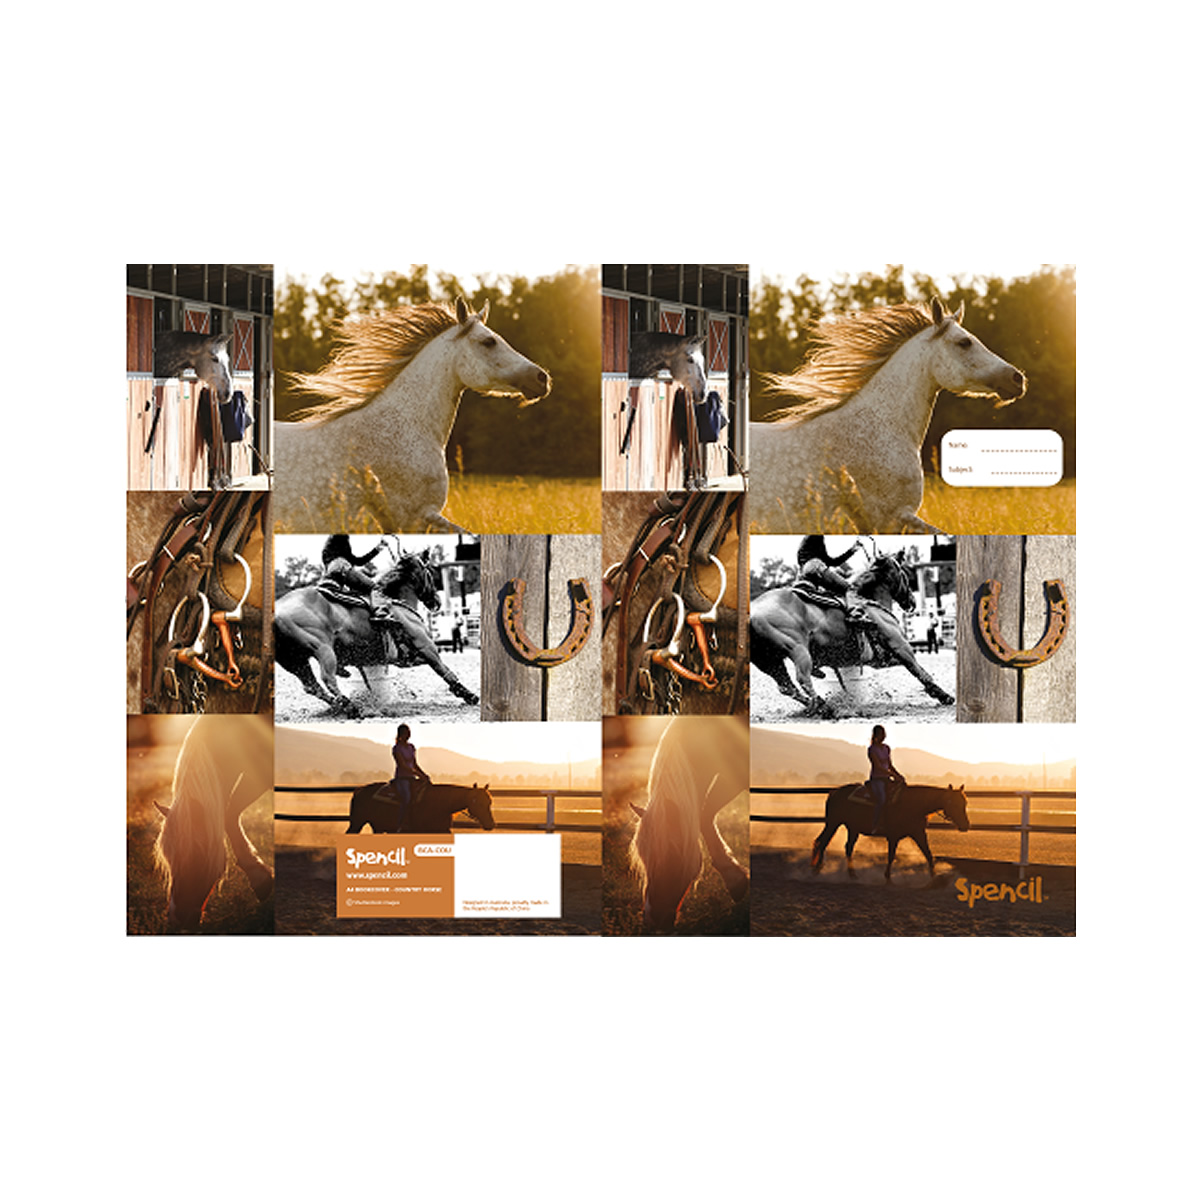 Country Horse Book Covers Filly And Co Horse Gifts